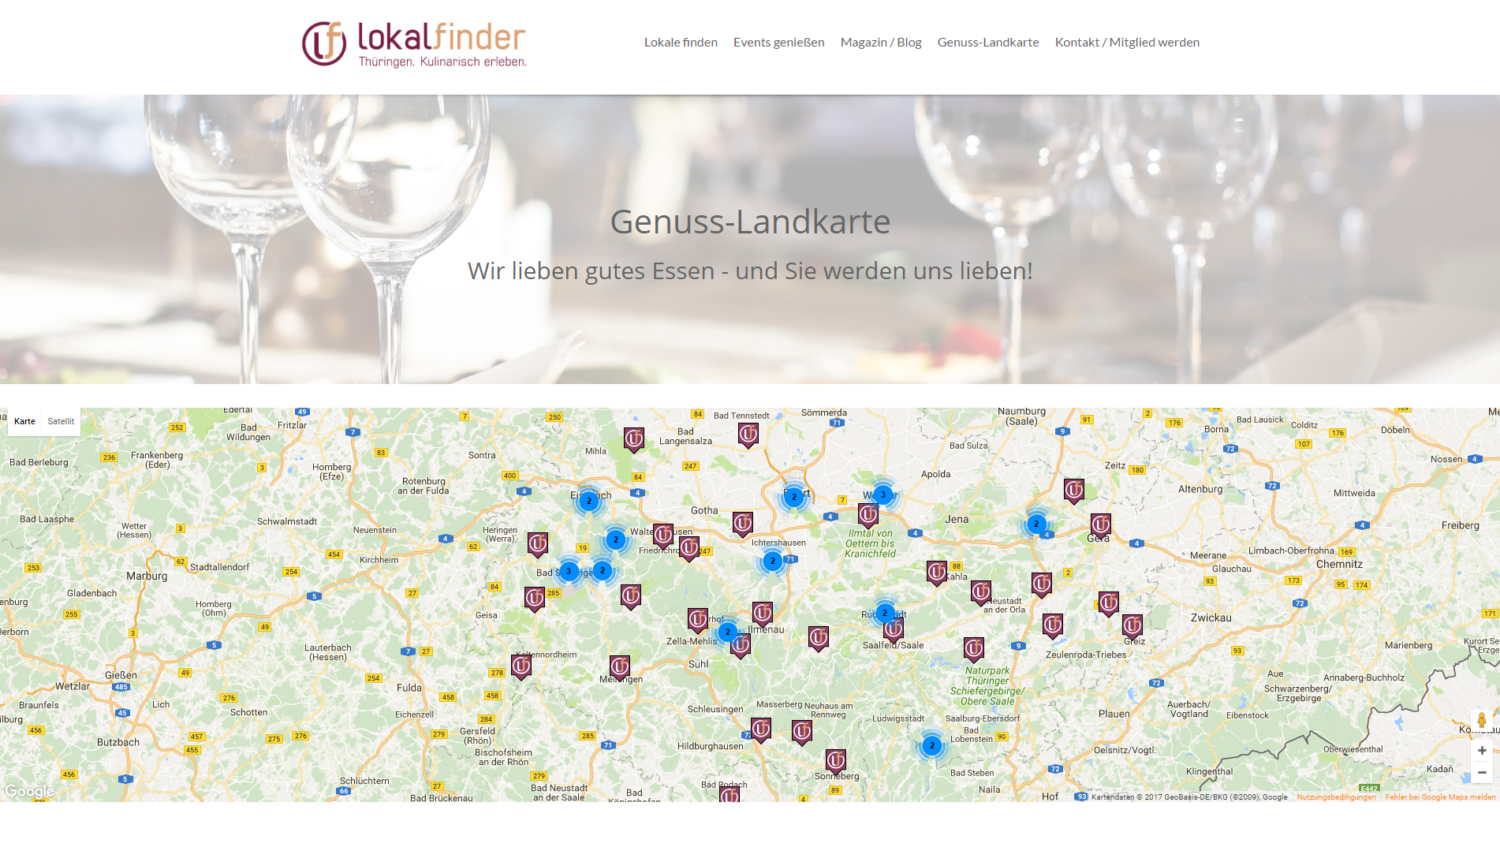 Screenshot der Webseite https://www.lokalfinder-thueringen.de